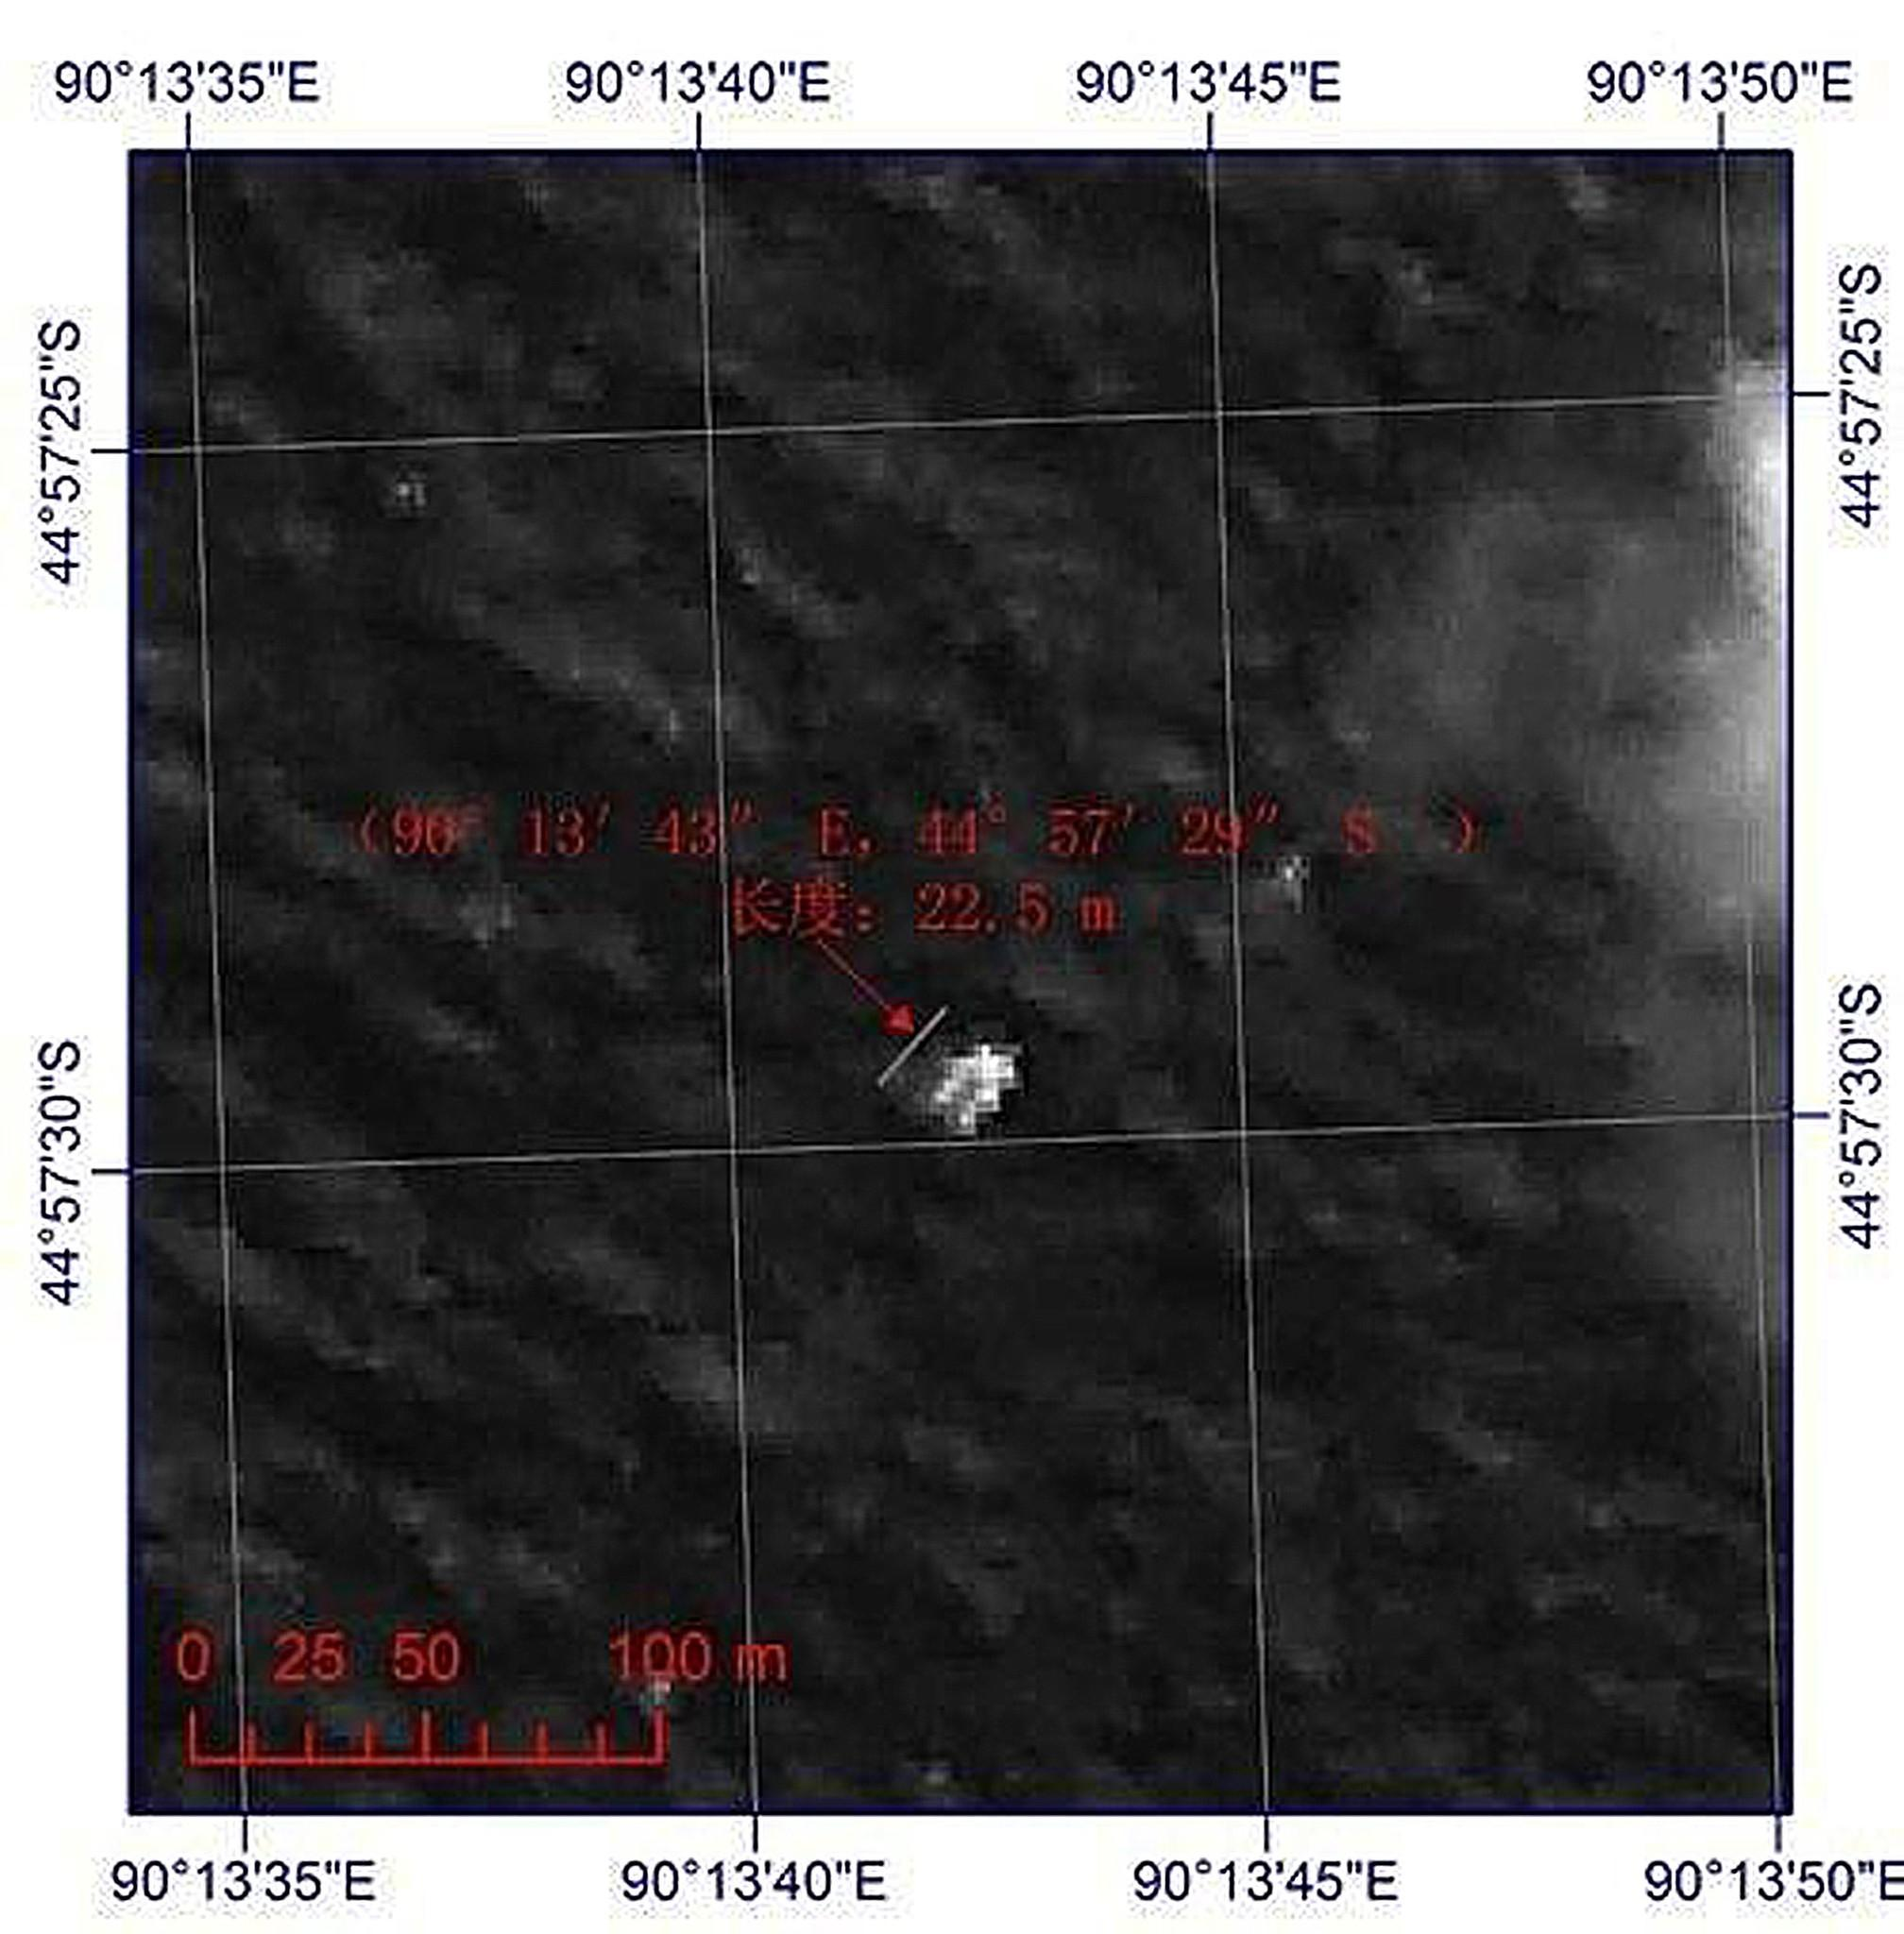 A new image from a Chinese satellite shows a large object floating in the Indian Ocean that could be part of Malaysia Airlines Flight 370.